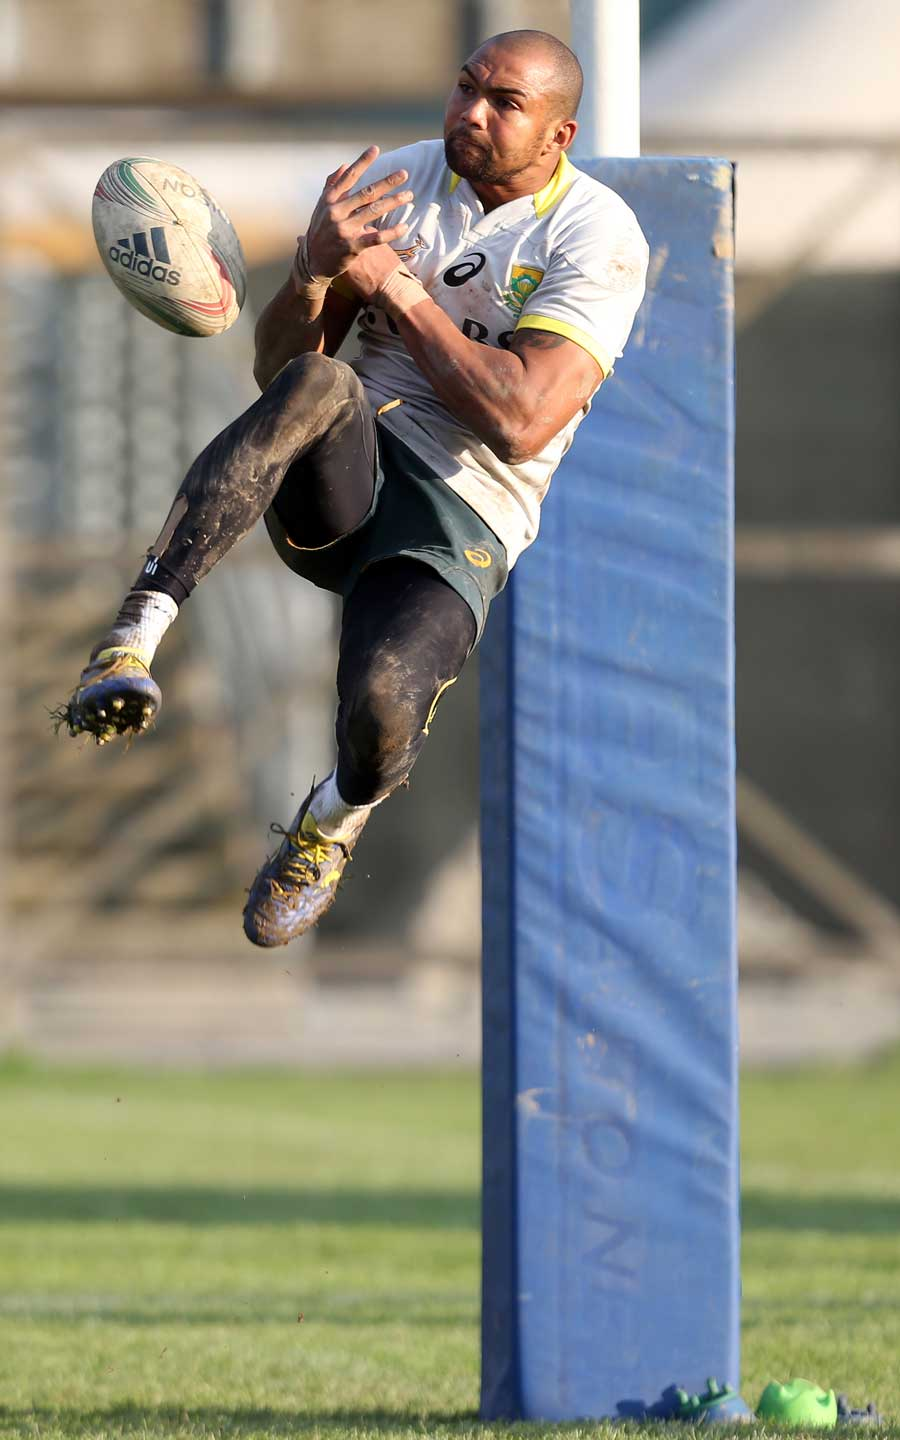 South Africa's Cornal Hendricks leaps high during training